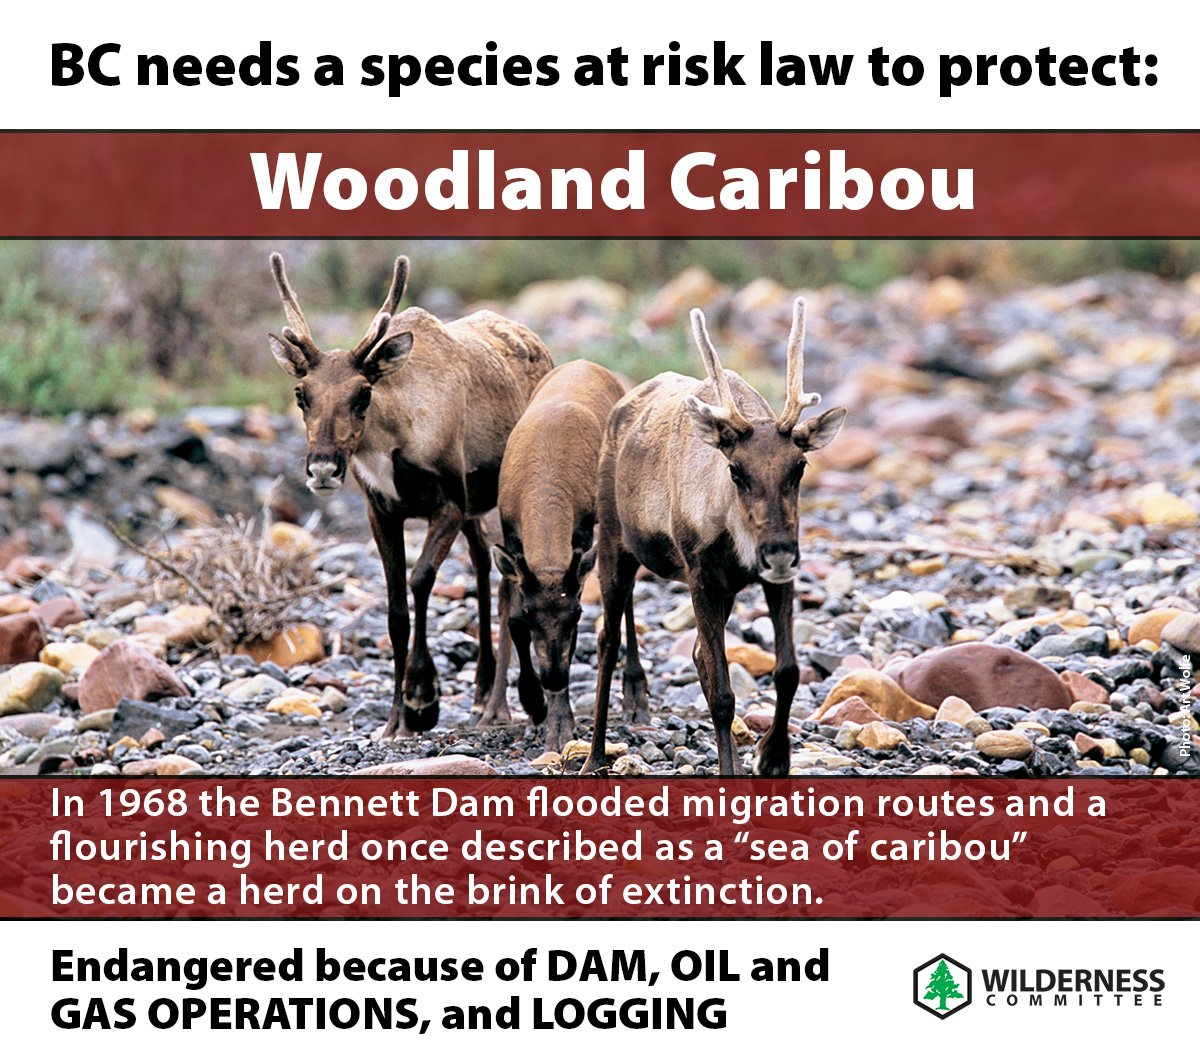 #BC needs an #endangered species law which the BC government has promised. Here&#39;s a reason why this law is crucial! We need to protect the 1,900 species at risk in BC. #Law4BCspecies RT if you support a species at risk law! #caribou #bcpoli @GeorgeHeyman @AJWVictoriaBC<br>http://pic.twitter.com/26RAE9z1g2